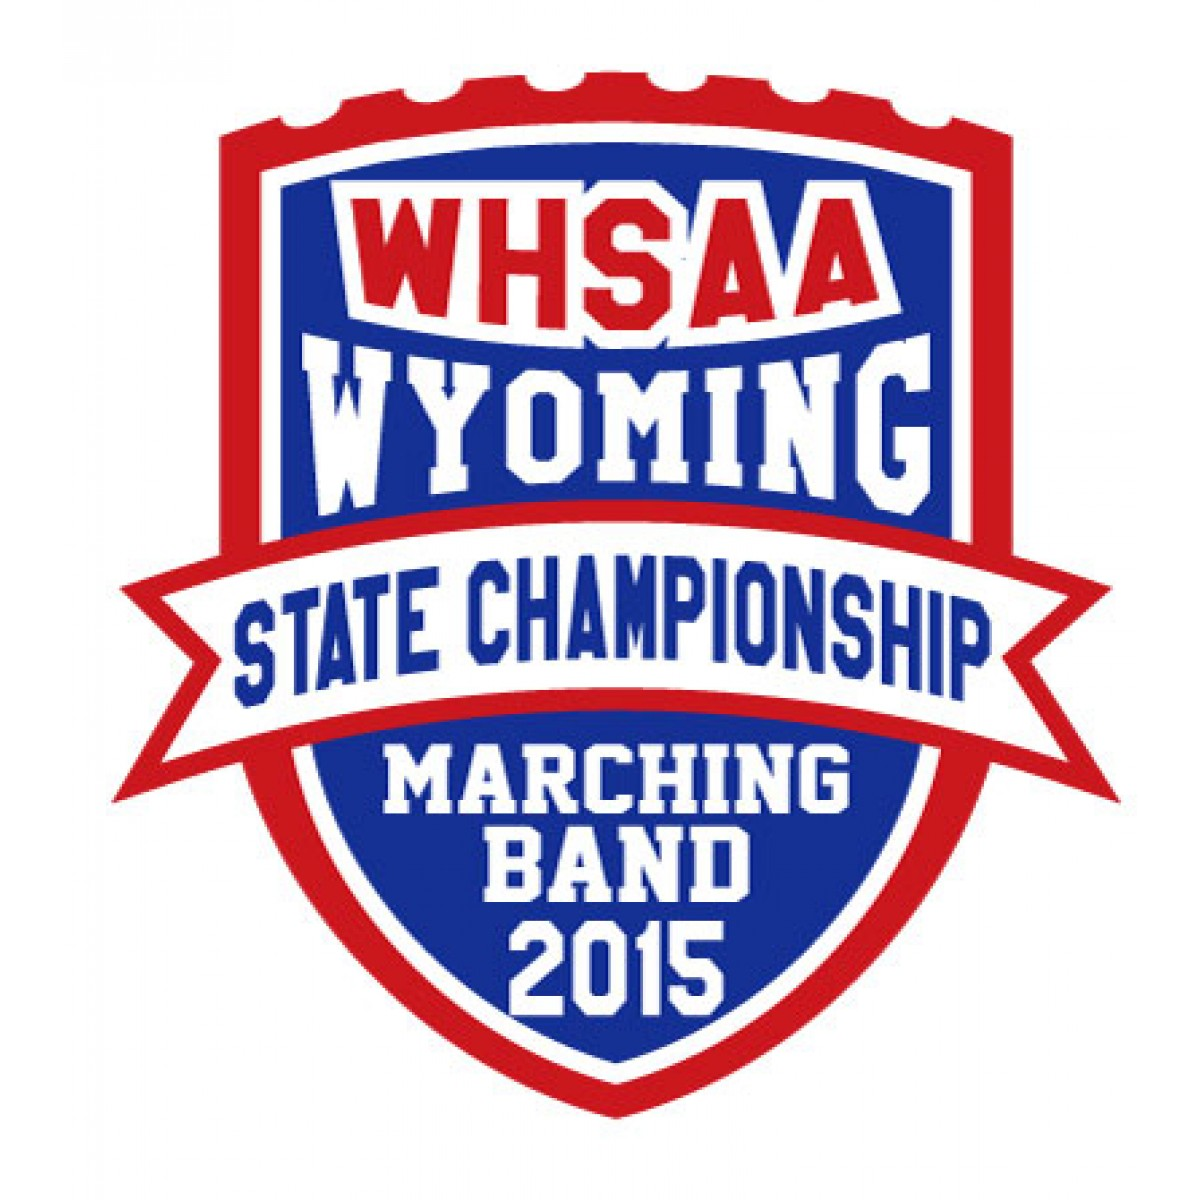 2015 WHSAA Marching Band State Patch